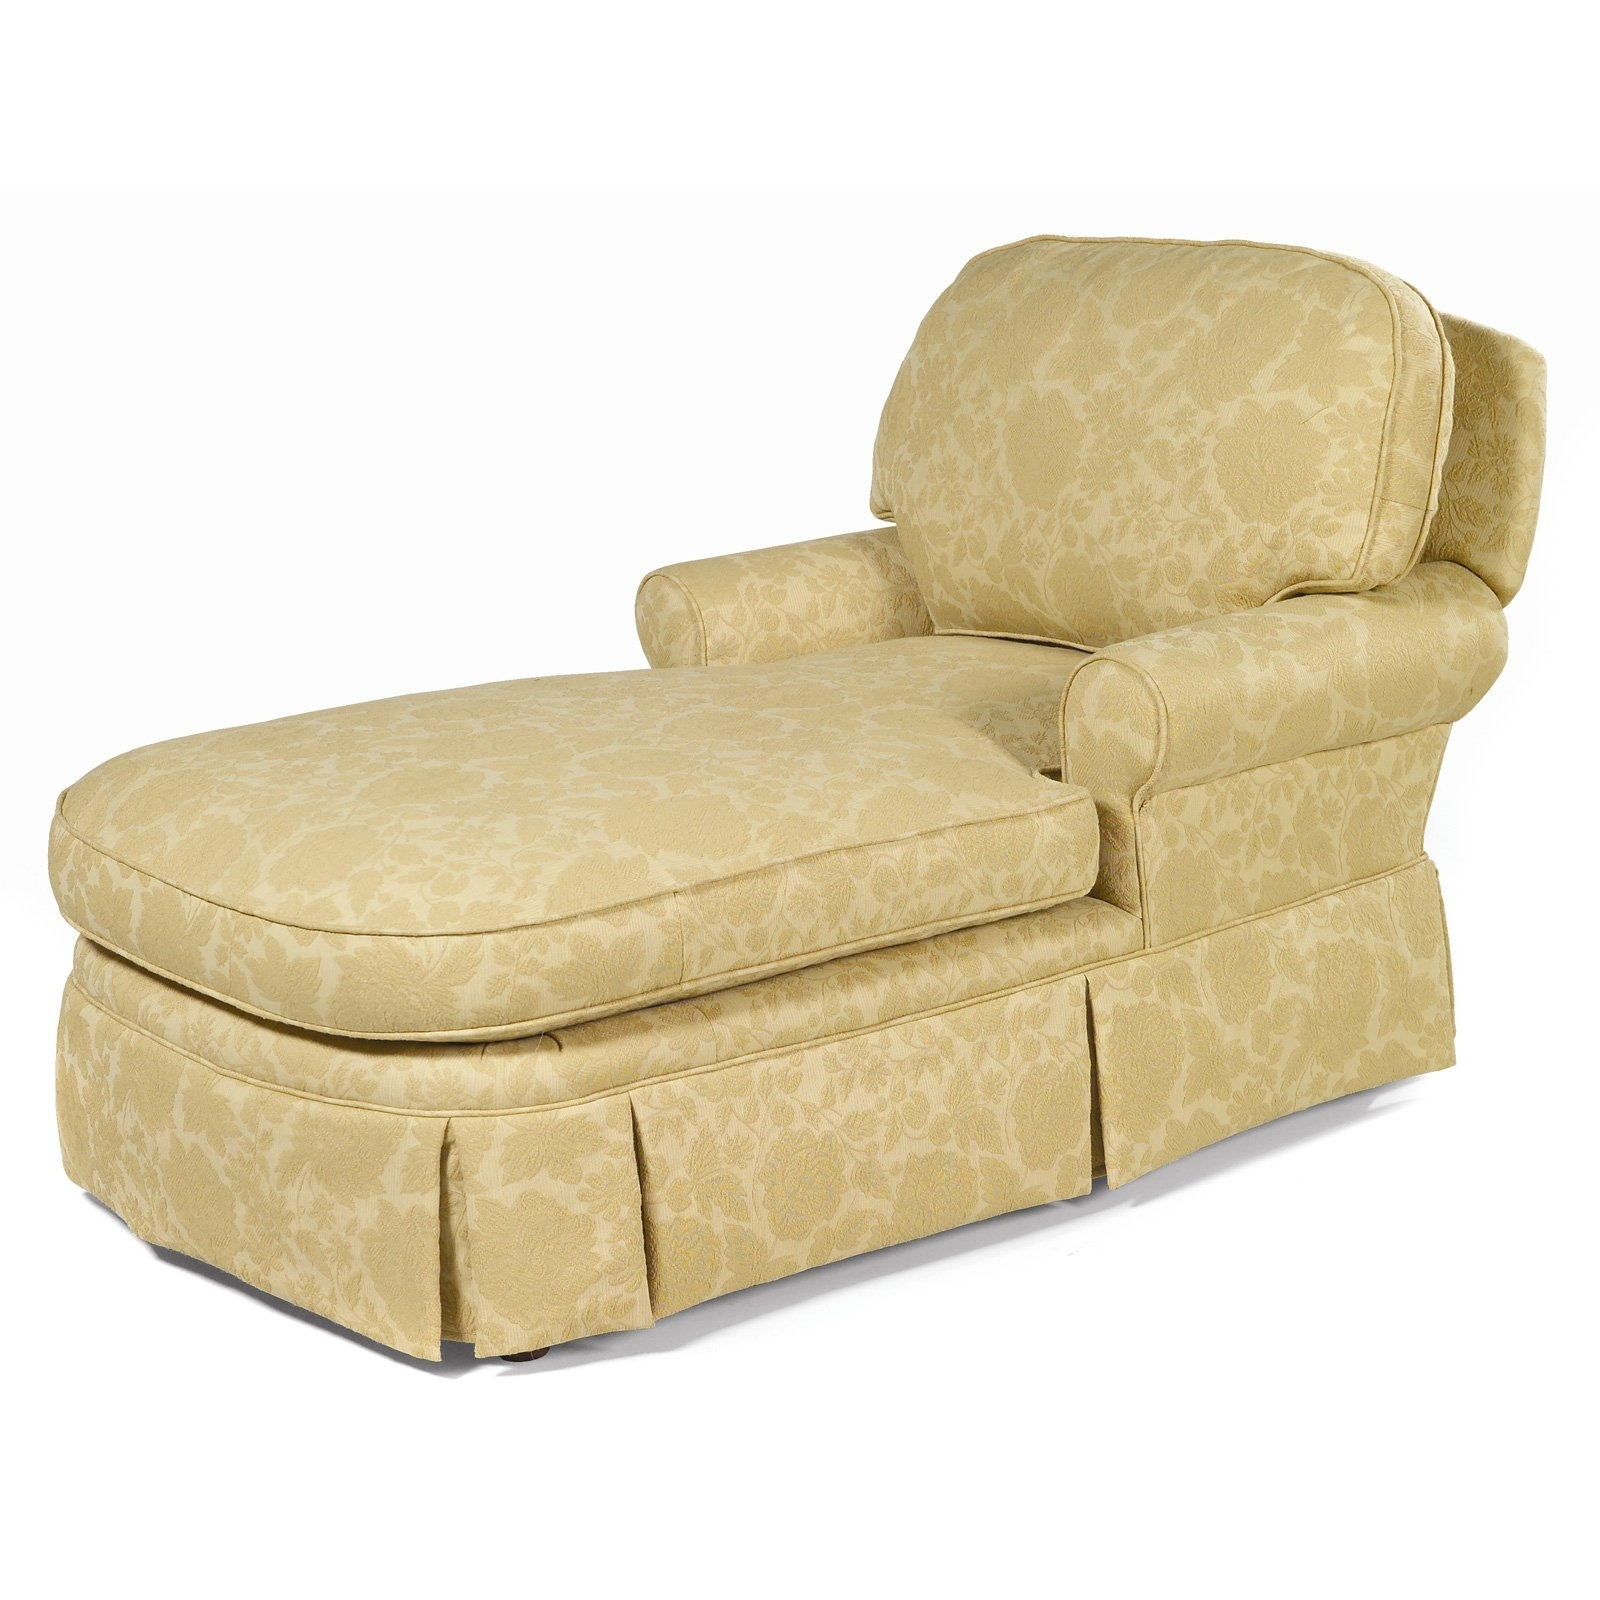 Best Chaise Lounge Chairs Best 15 43 Of Chaise Lounge Chairs Under 200